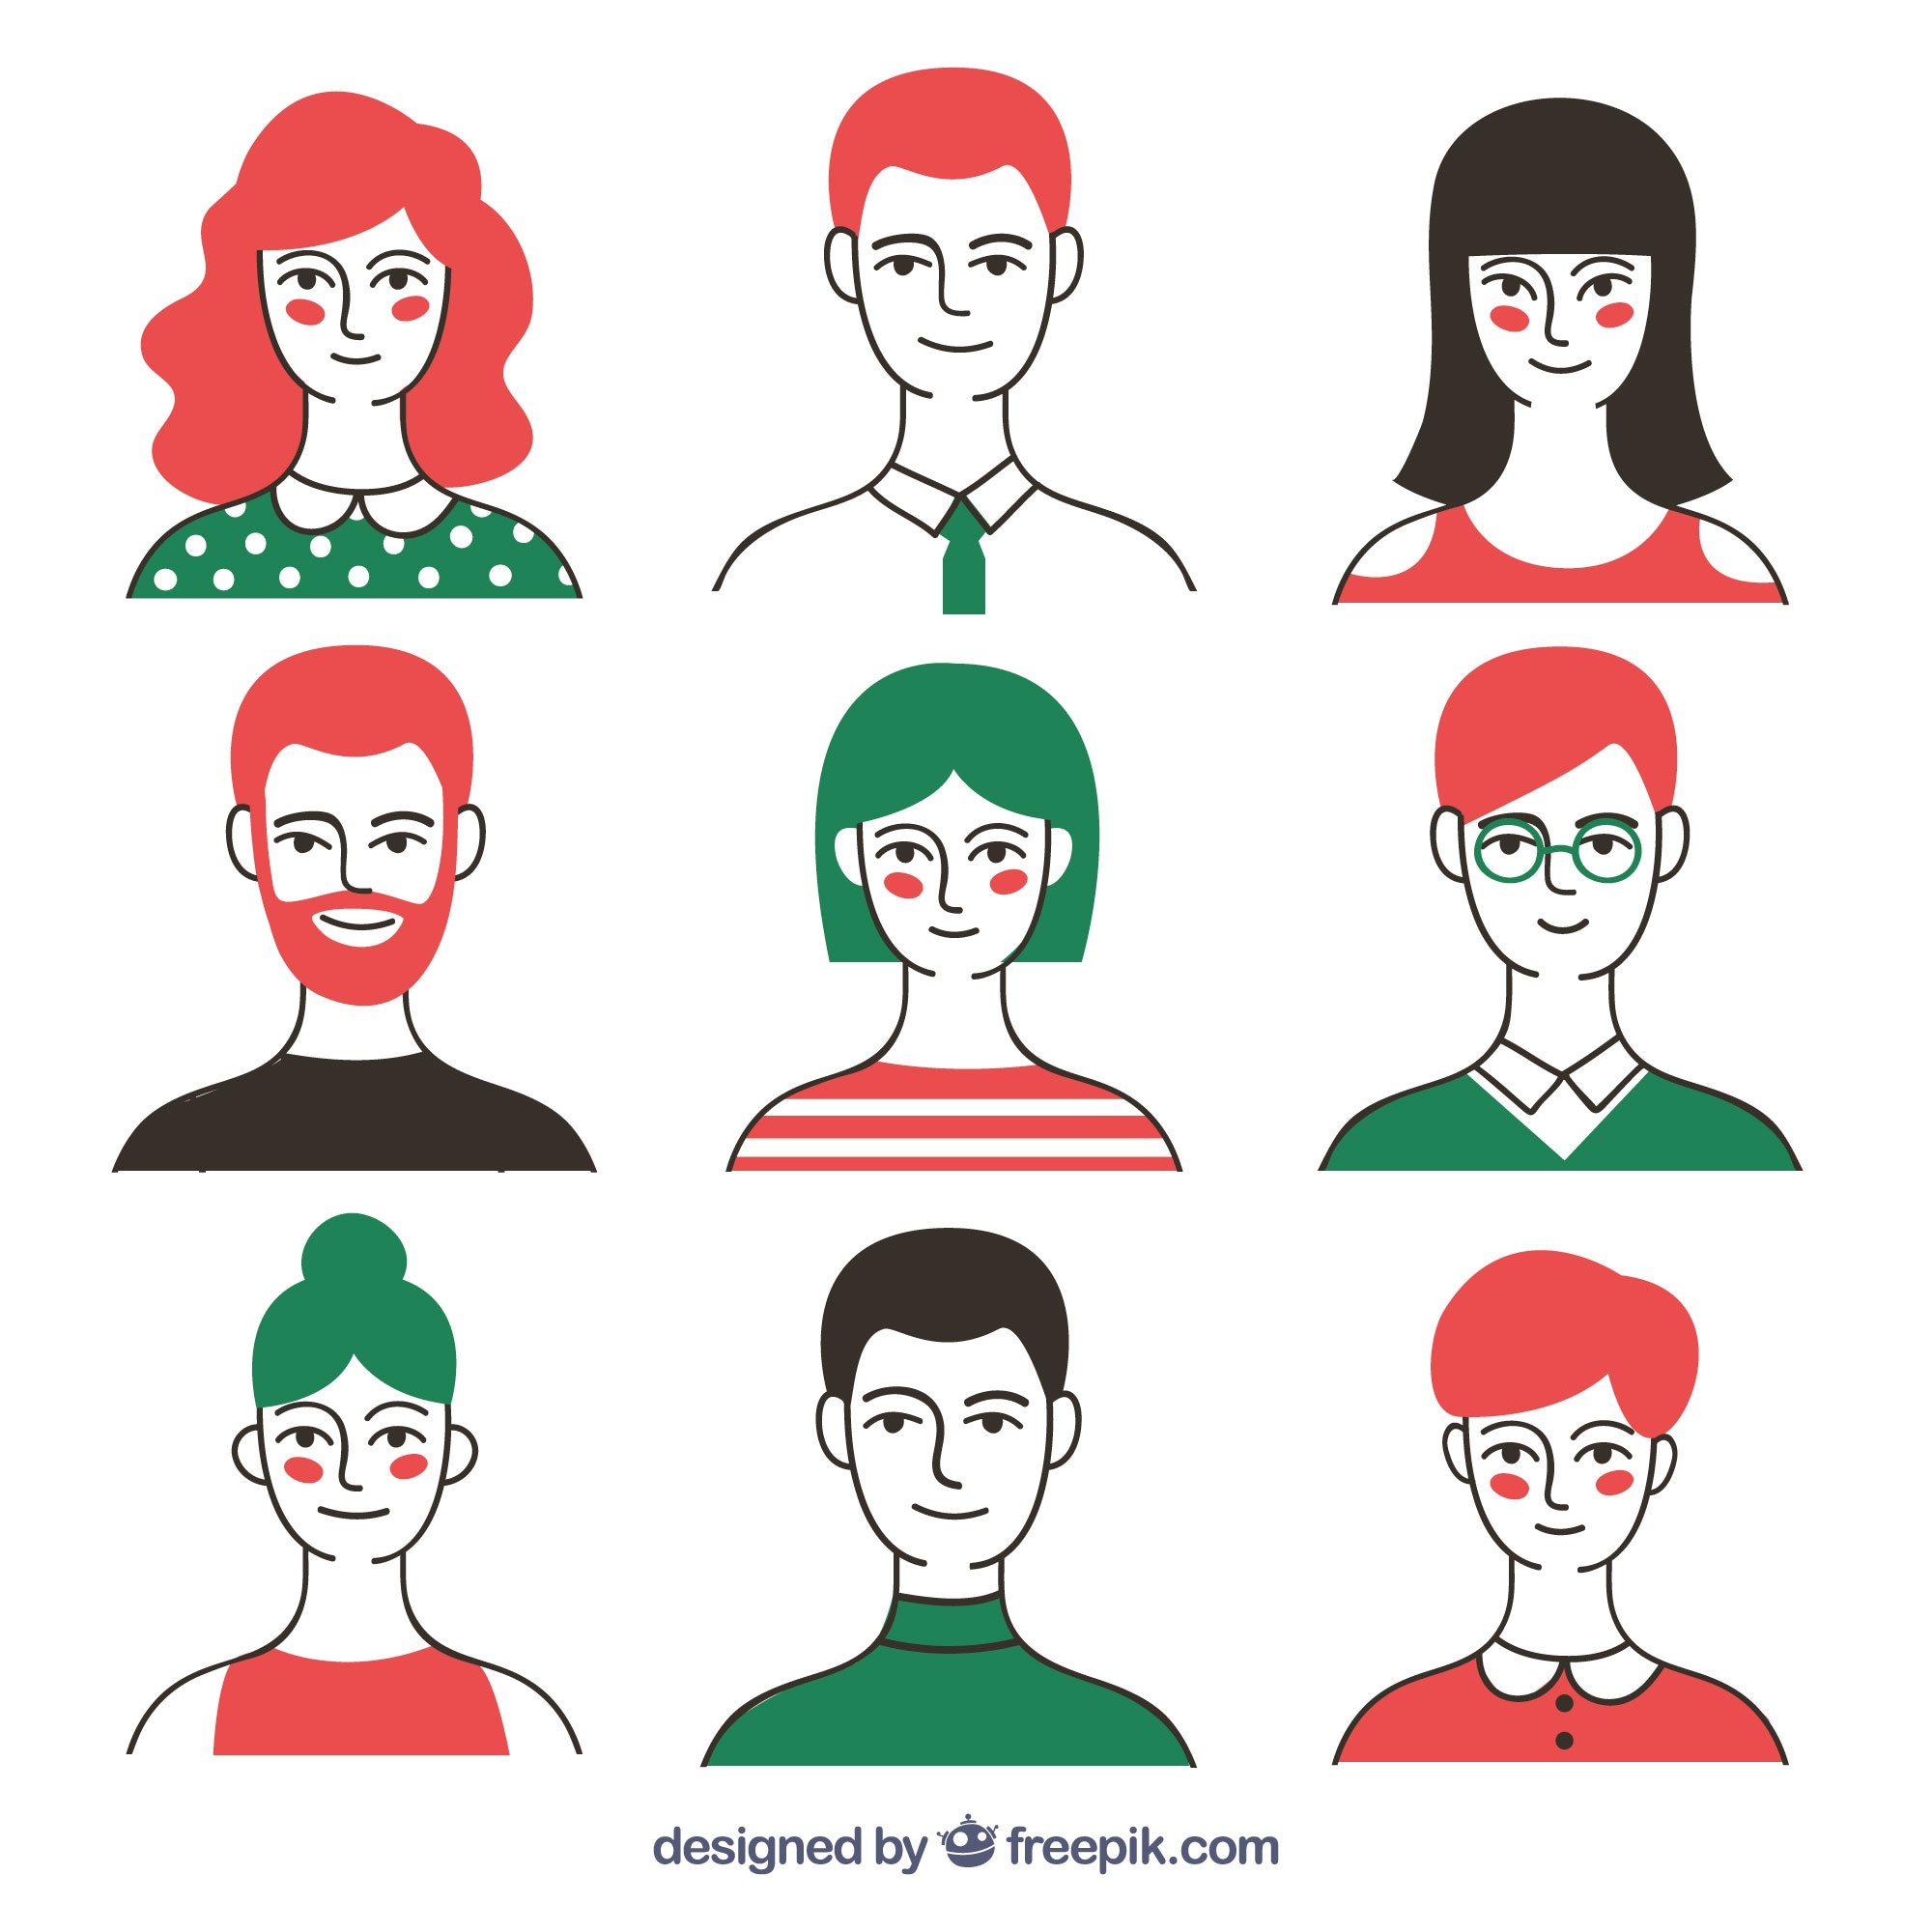 Modern pack of colorful avatars